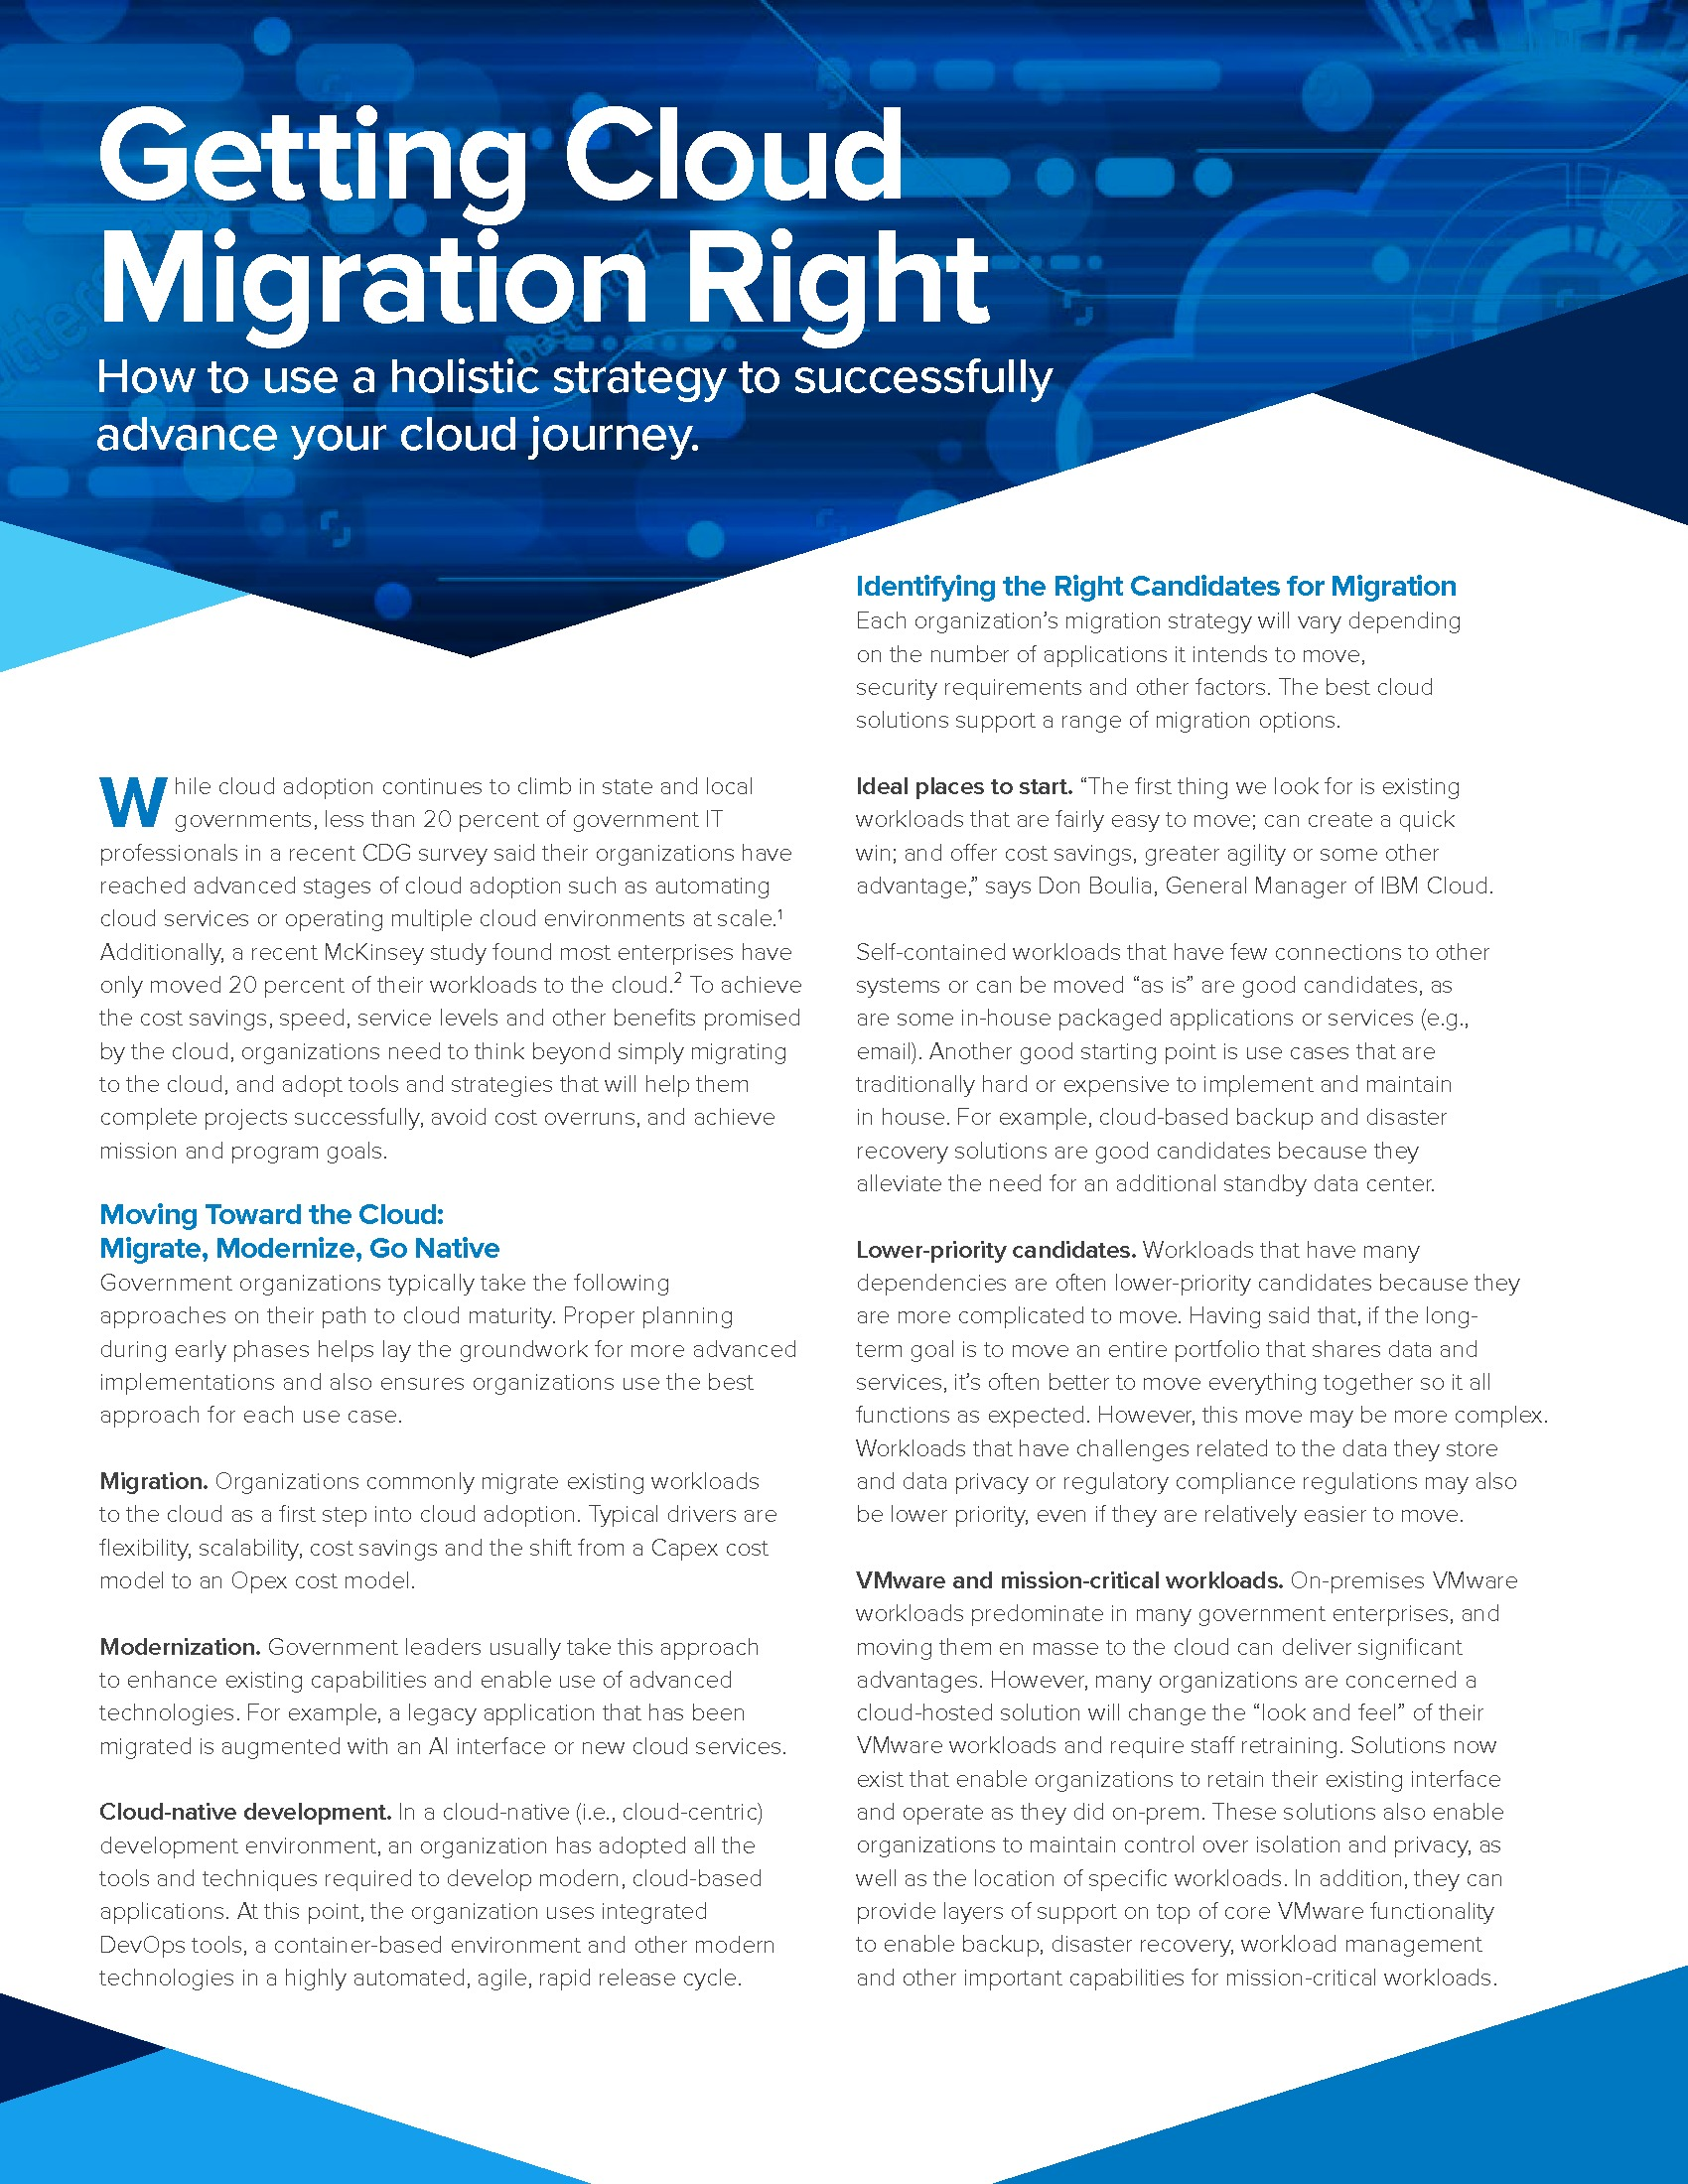 Paper: Getting Cloud Migration Right